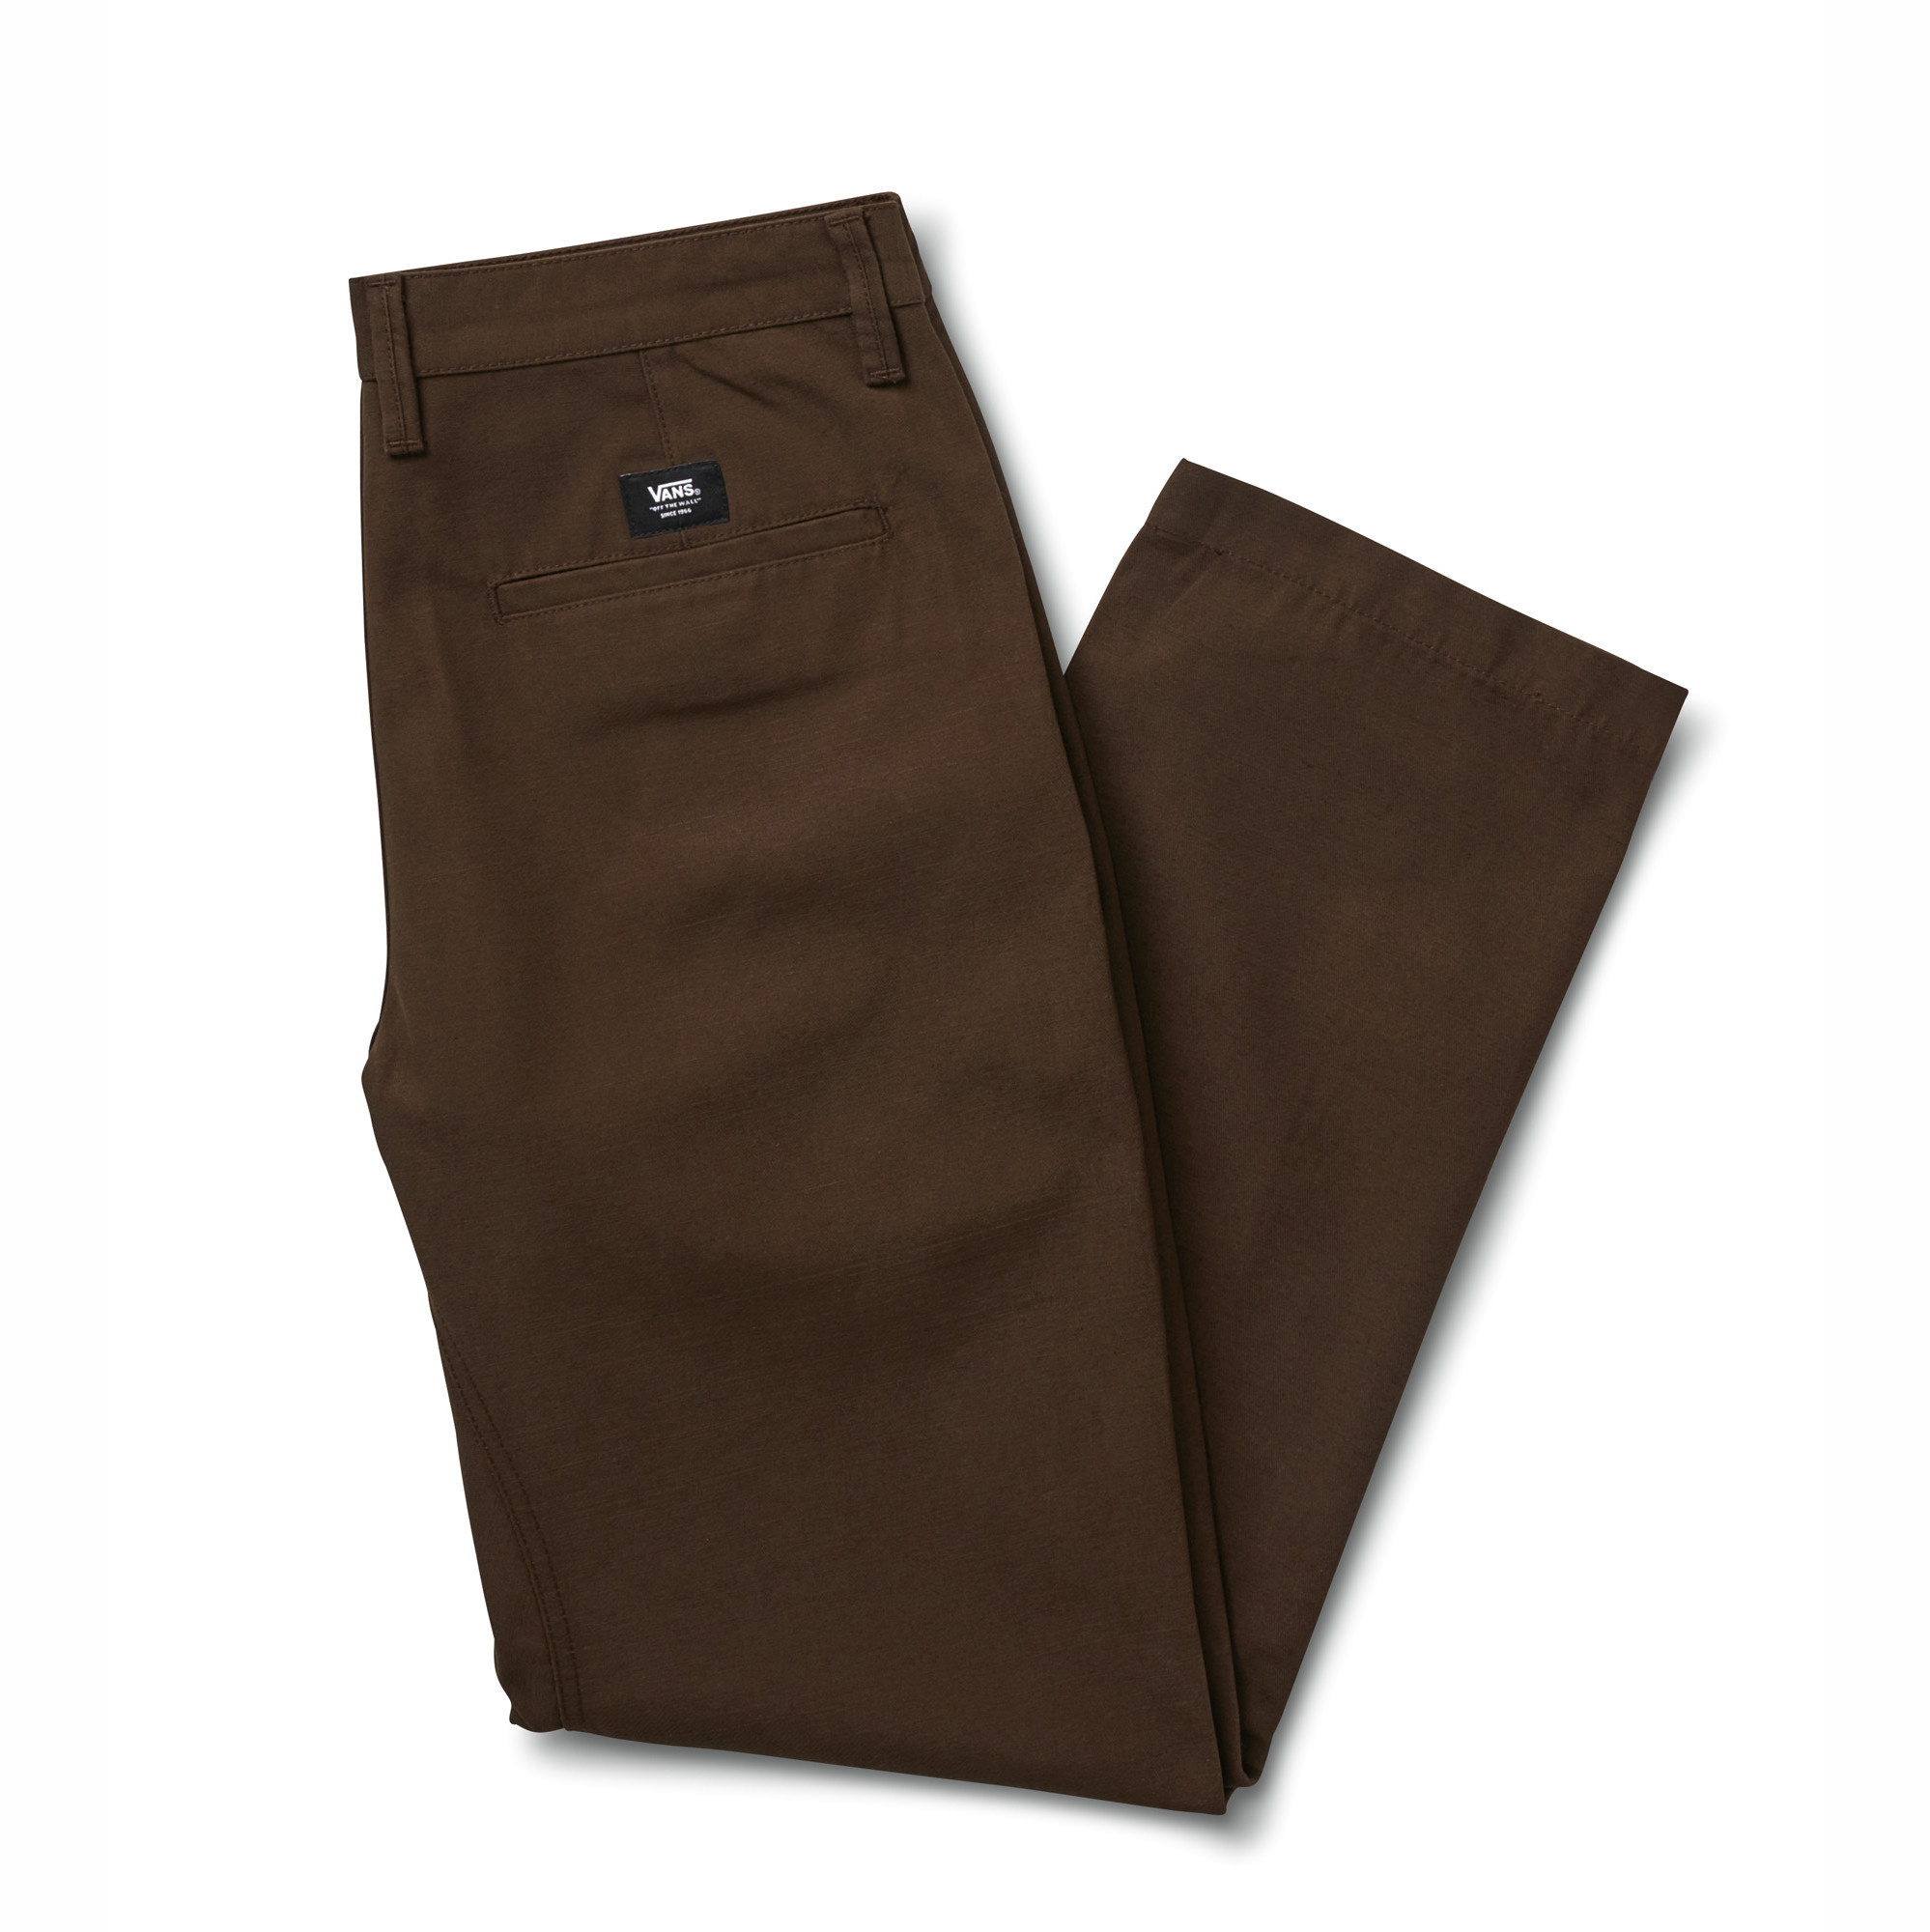 Vans Shoes Authentic Chino Glide Demitasse Brown